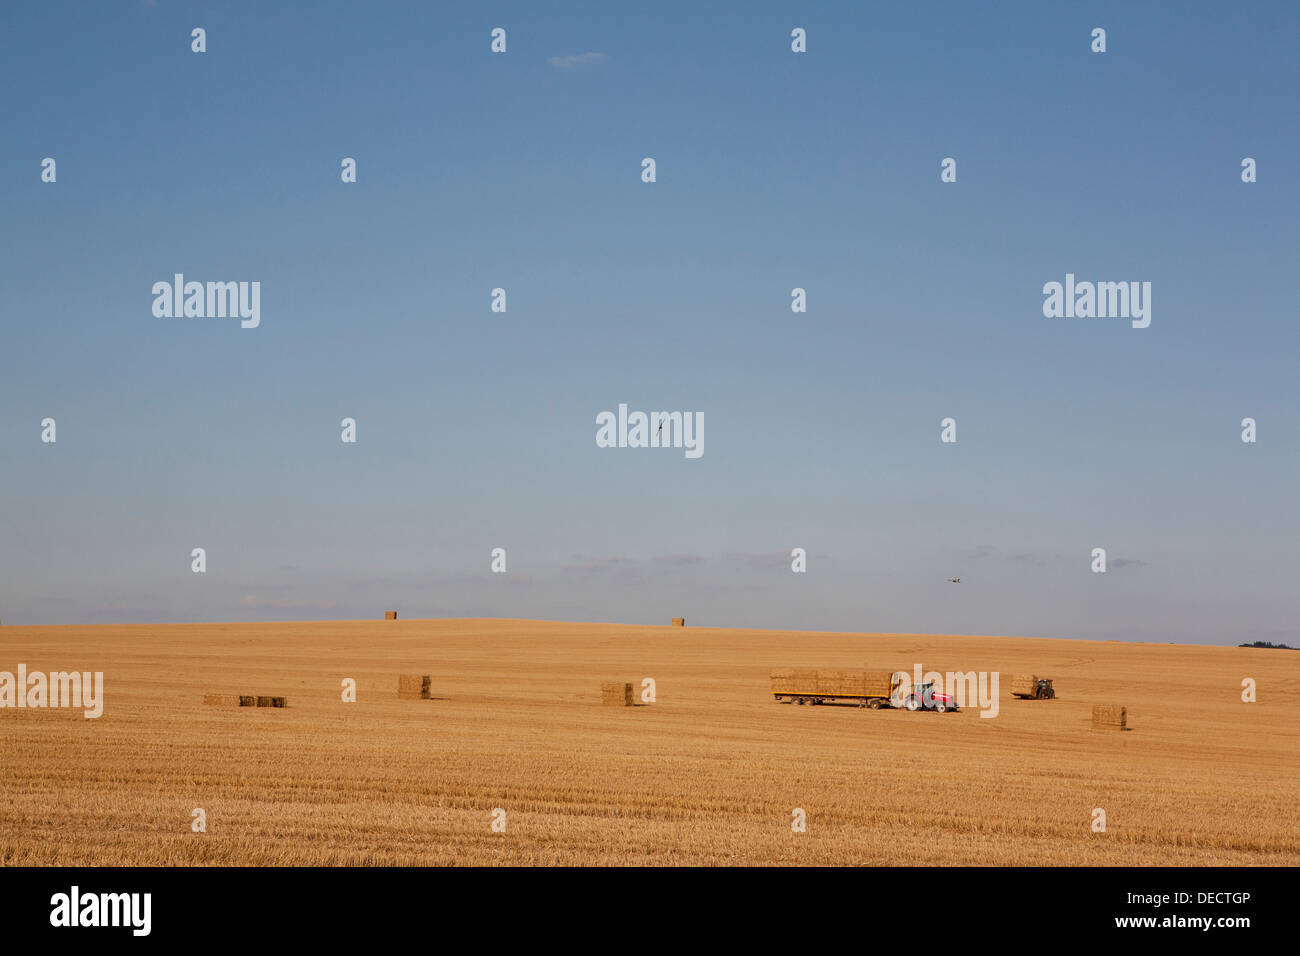 A red tractor (Massey Ferguson) collects straw bales on a trailer, a typical English summer season harvest scene. - Stock Image